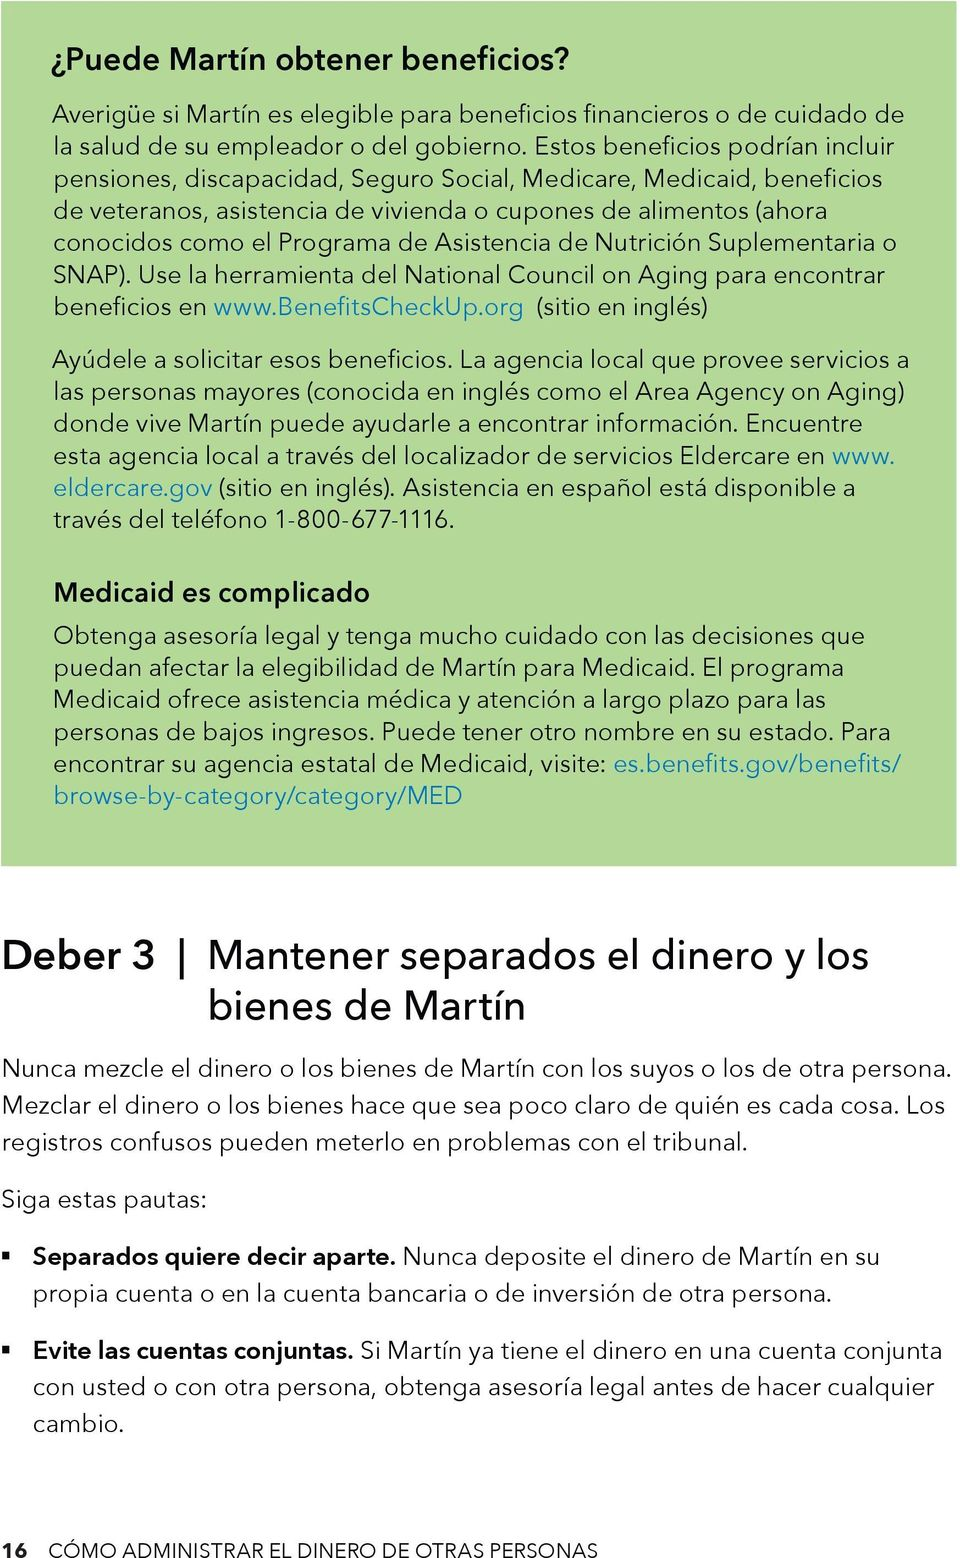 de Asistencia de Nutrición Suplementaria o SNAP). Use la herramienta del National Council on Aging para encontrar beneficios en www.benefitscheckup.